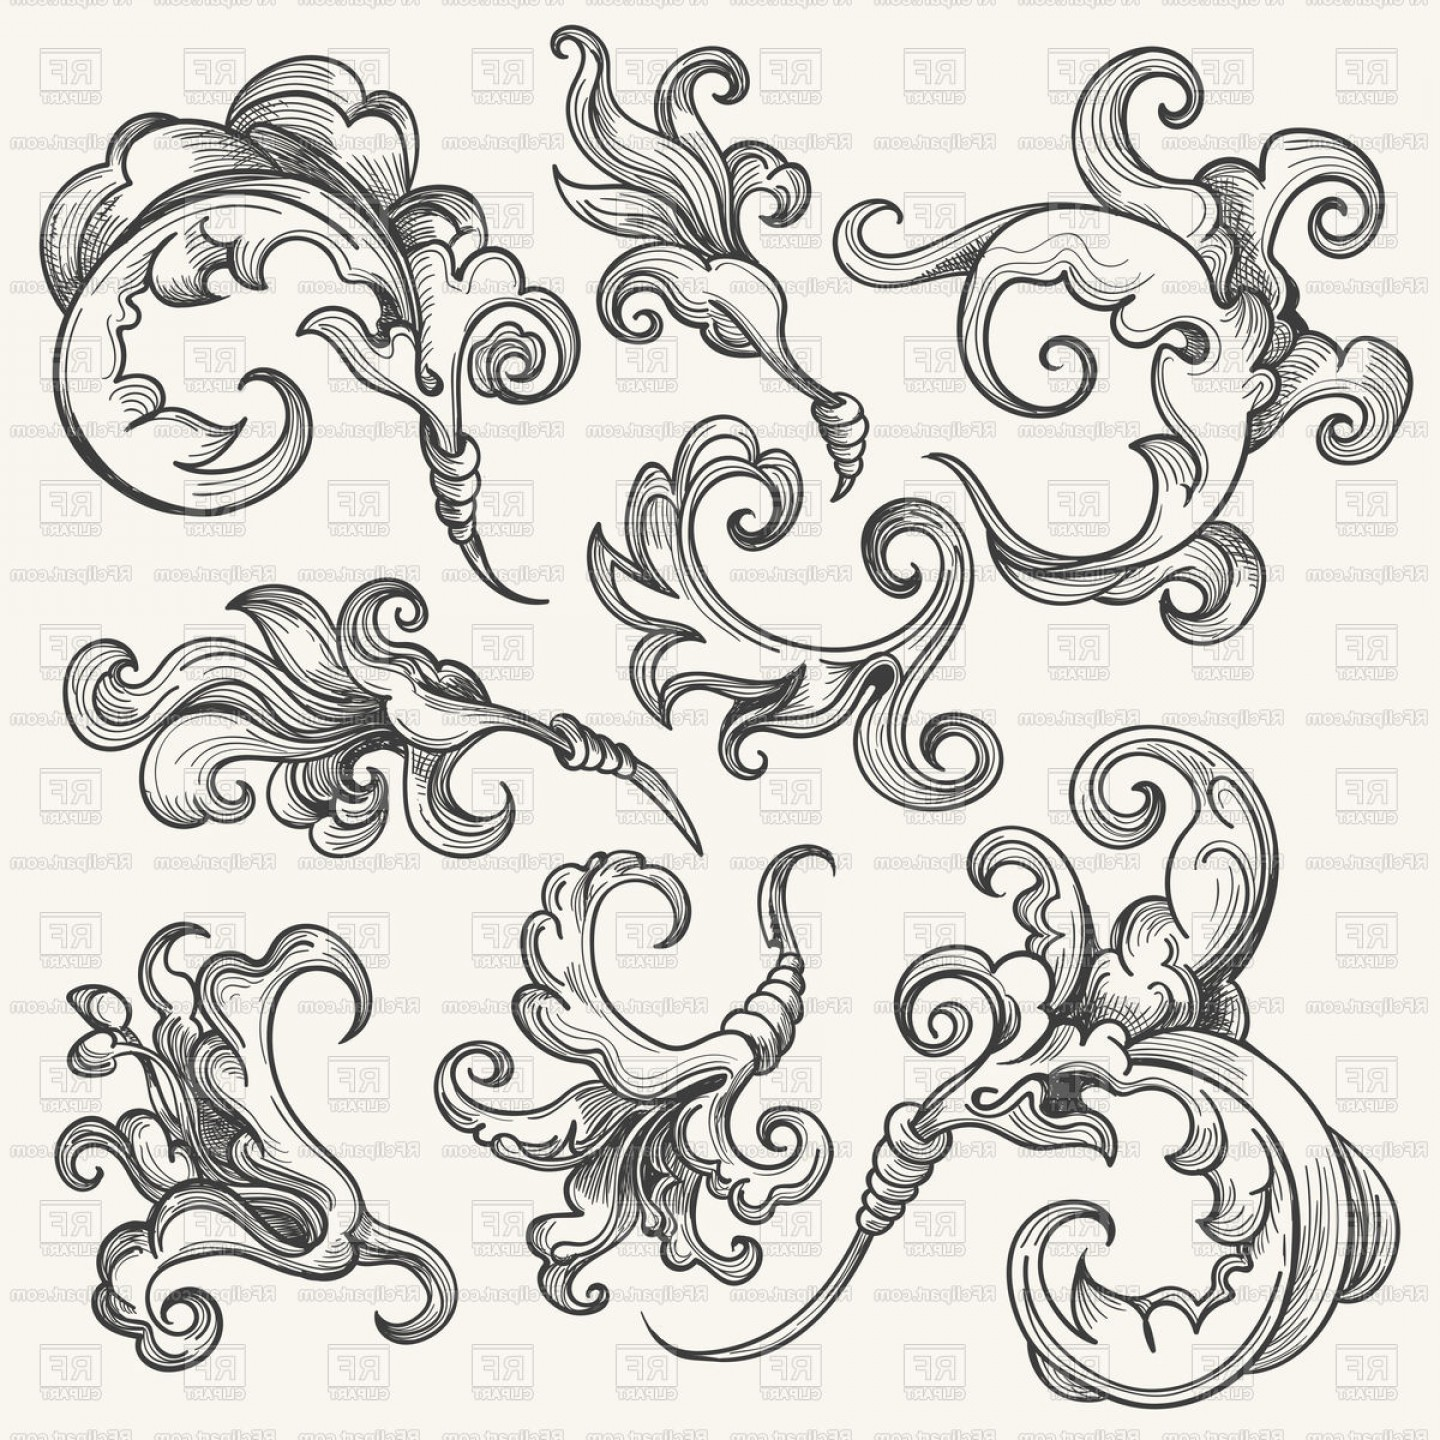 Baroque Vector Clip Art: Vintage Baroque Floral Ornament Vector Clipart